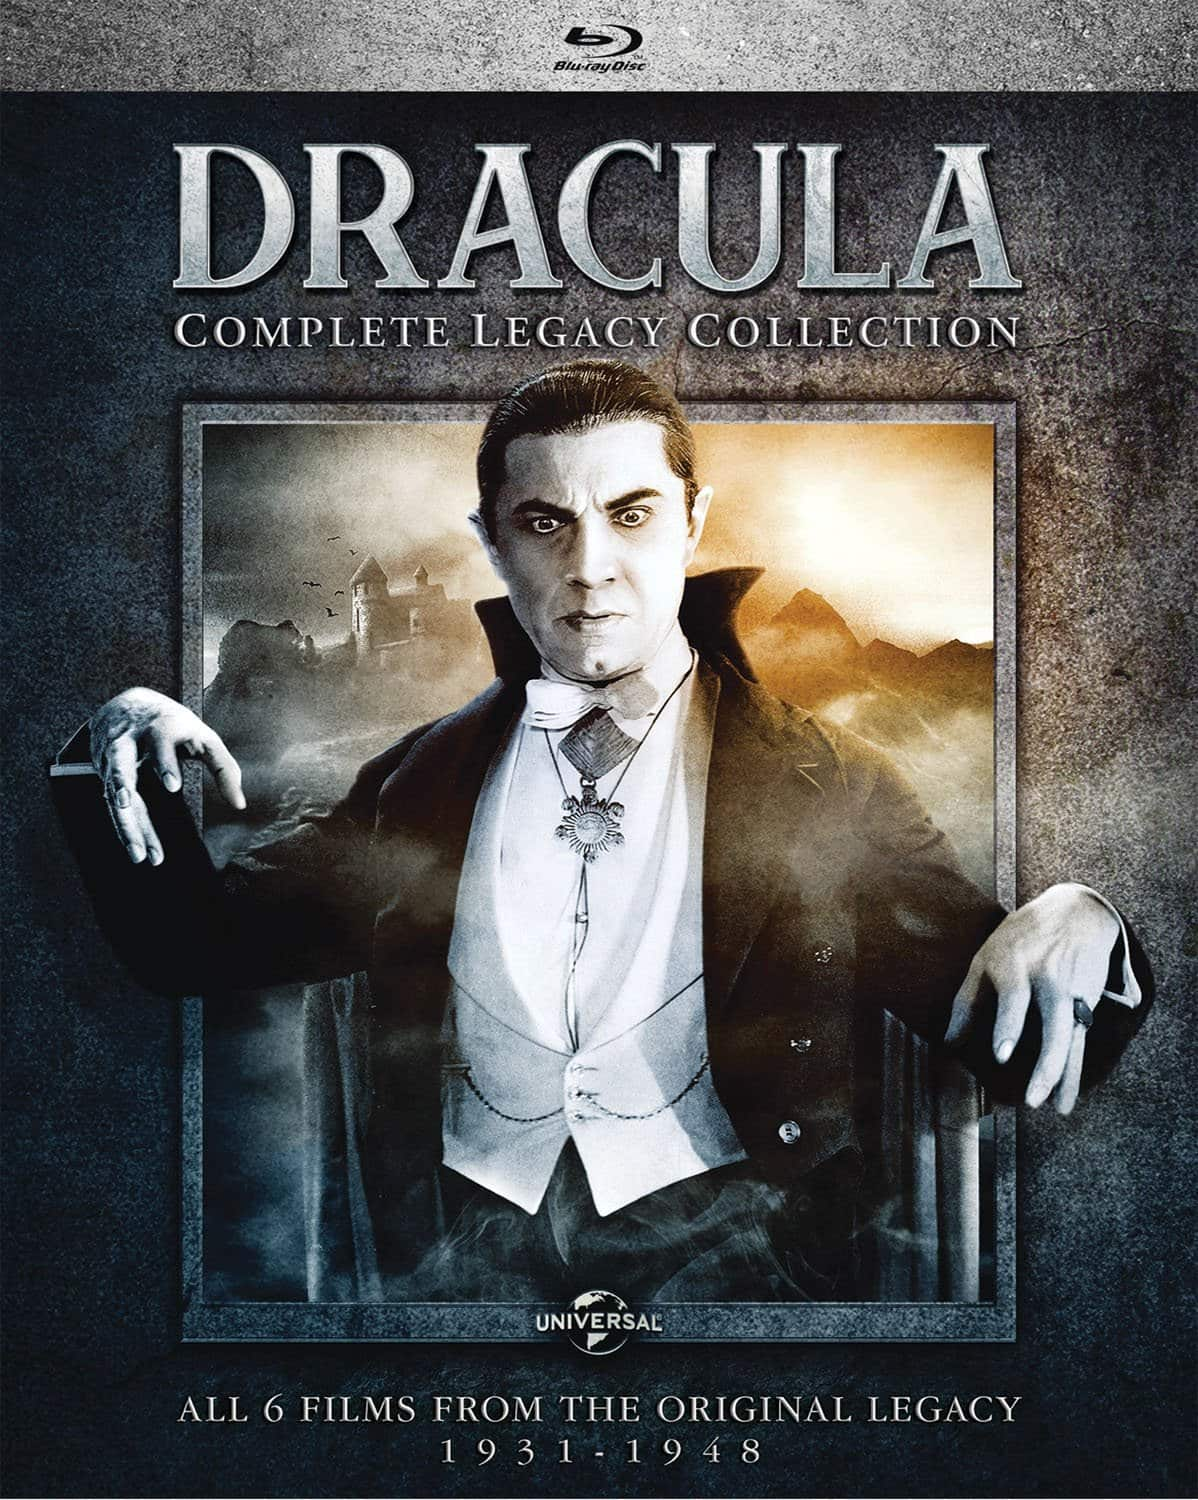 Target Stores: Dracula: Complete Legacy Collection Box Set (Blu-ray) $15.99